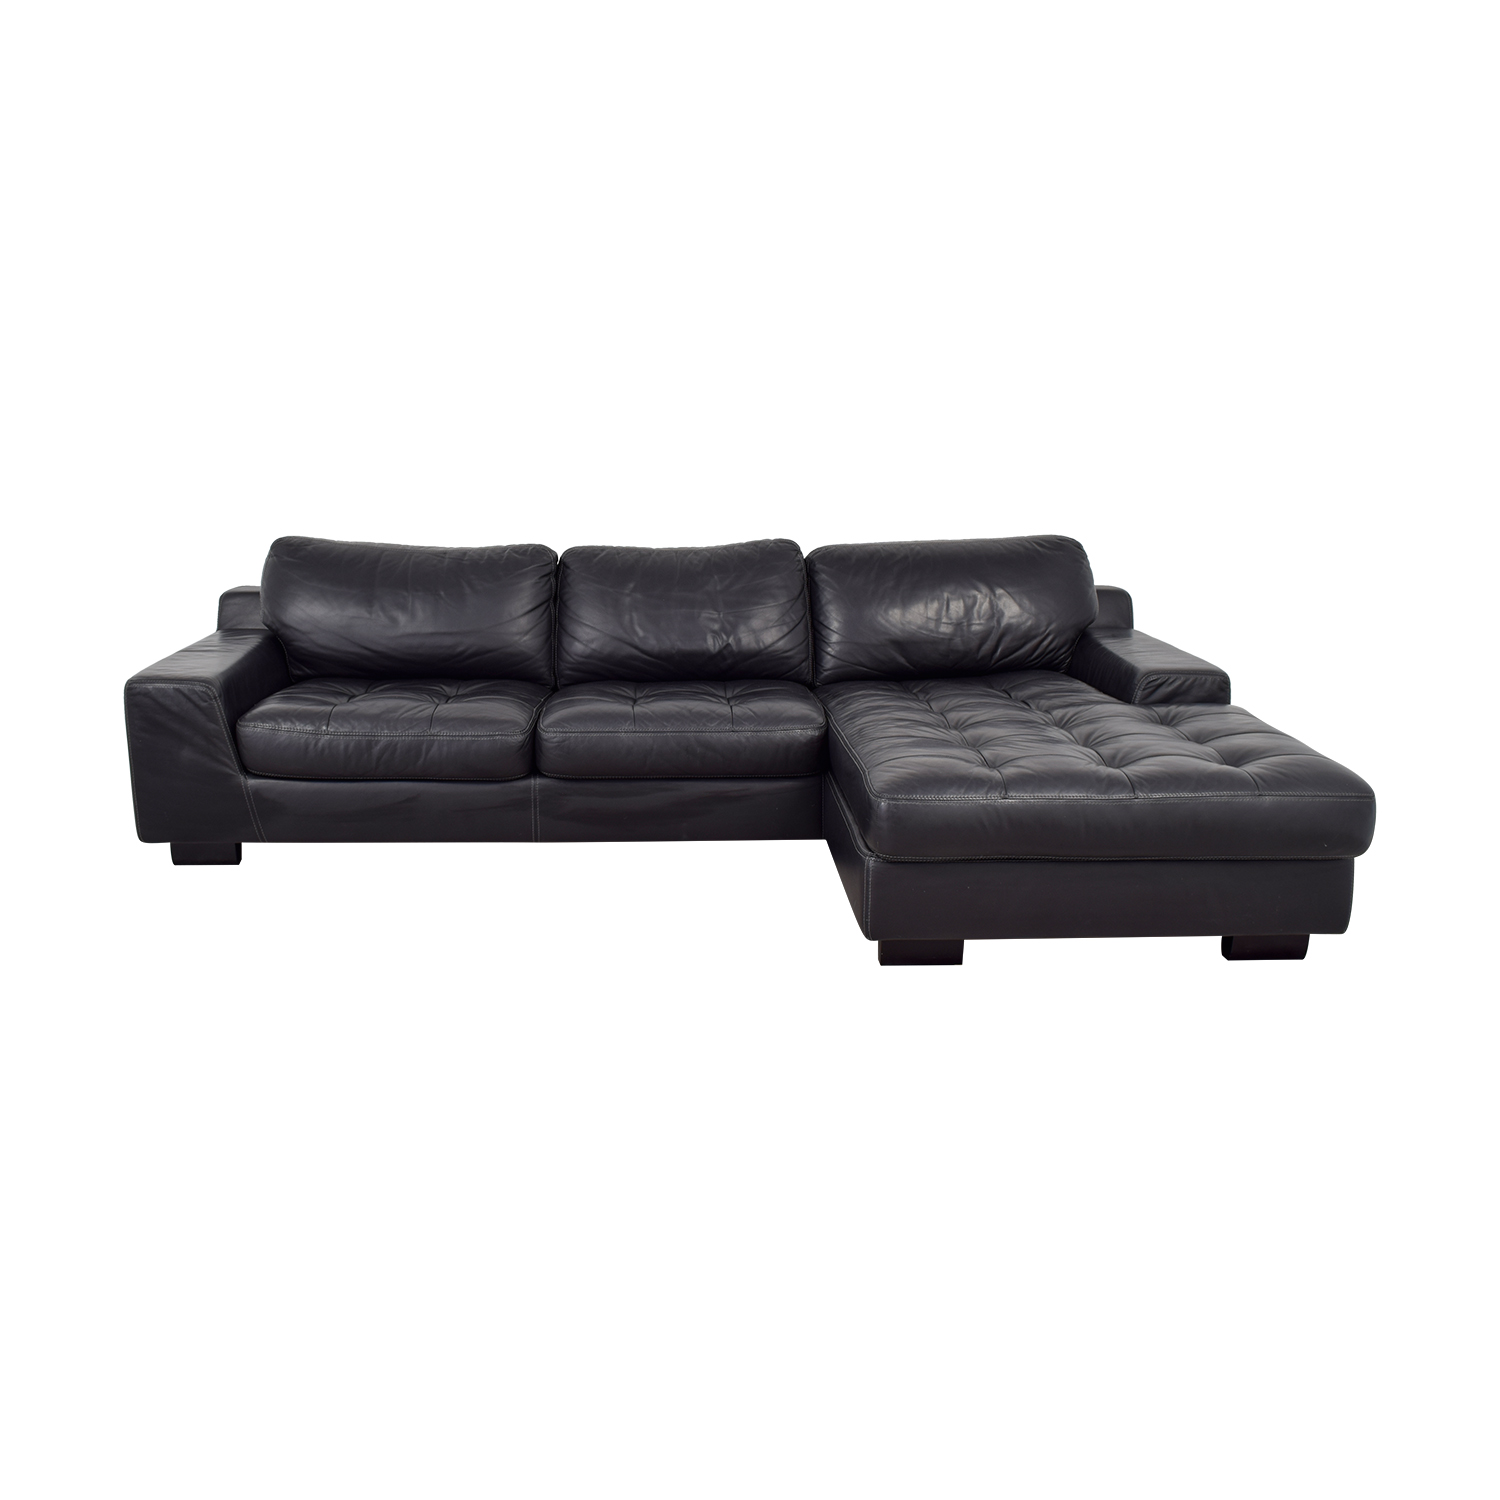 W. Schillig Black Tufted Leather Chaise Sectional W. Schillig